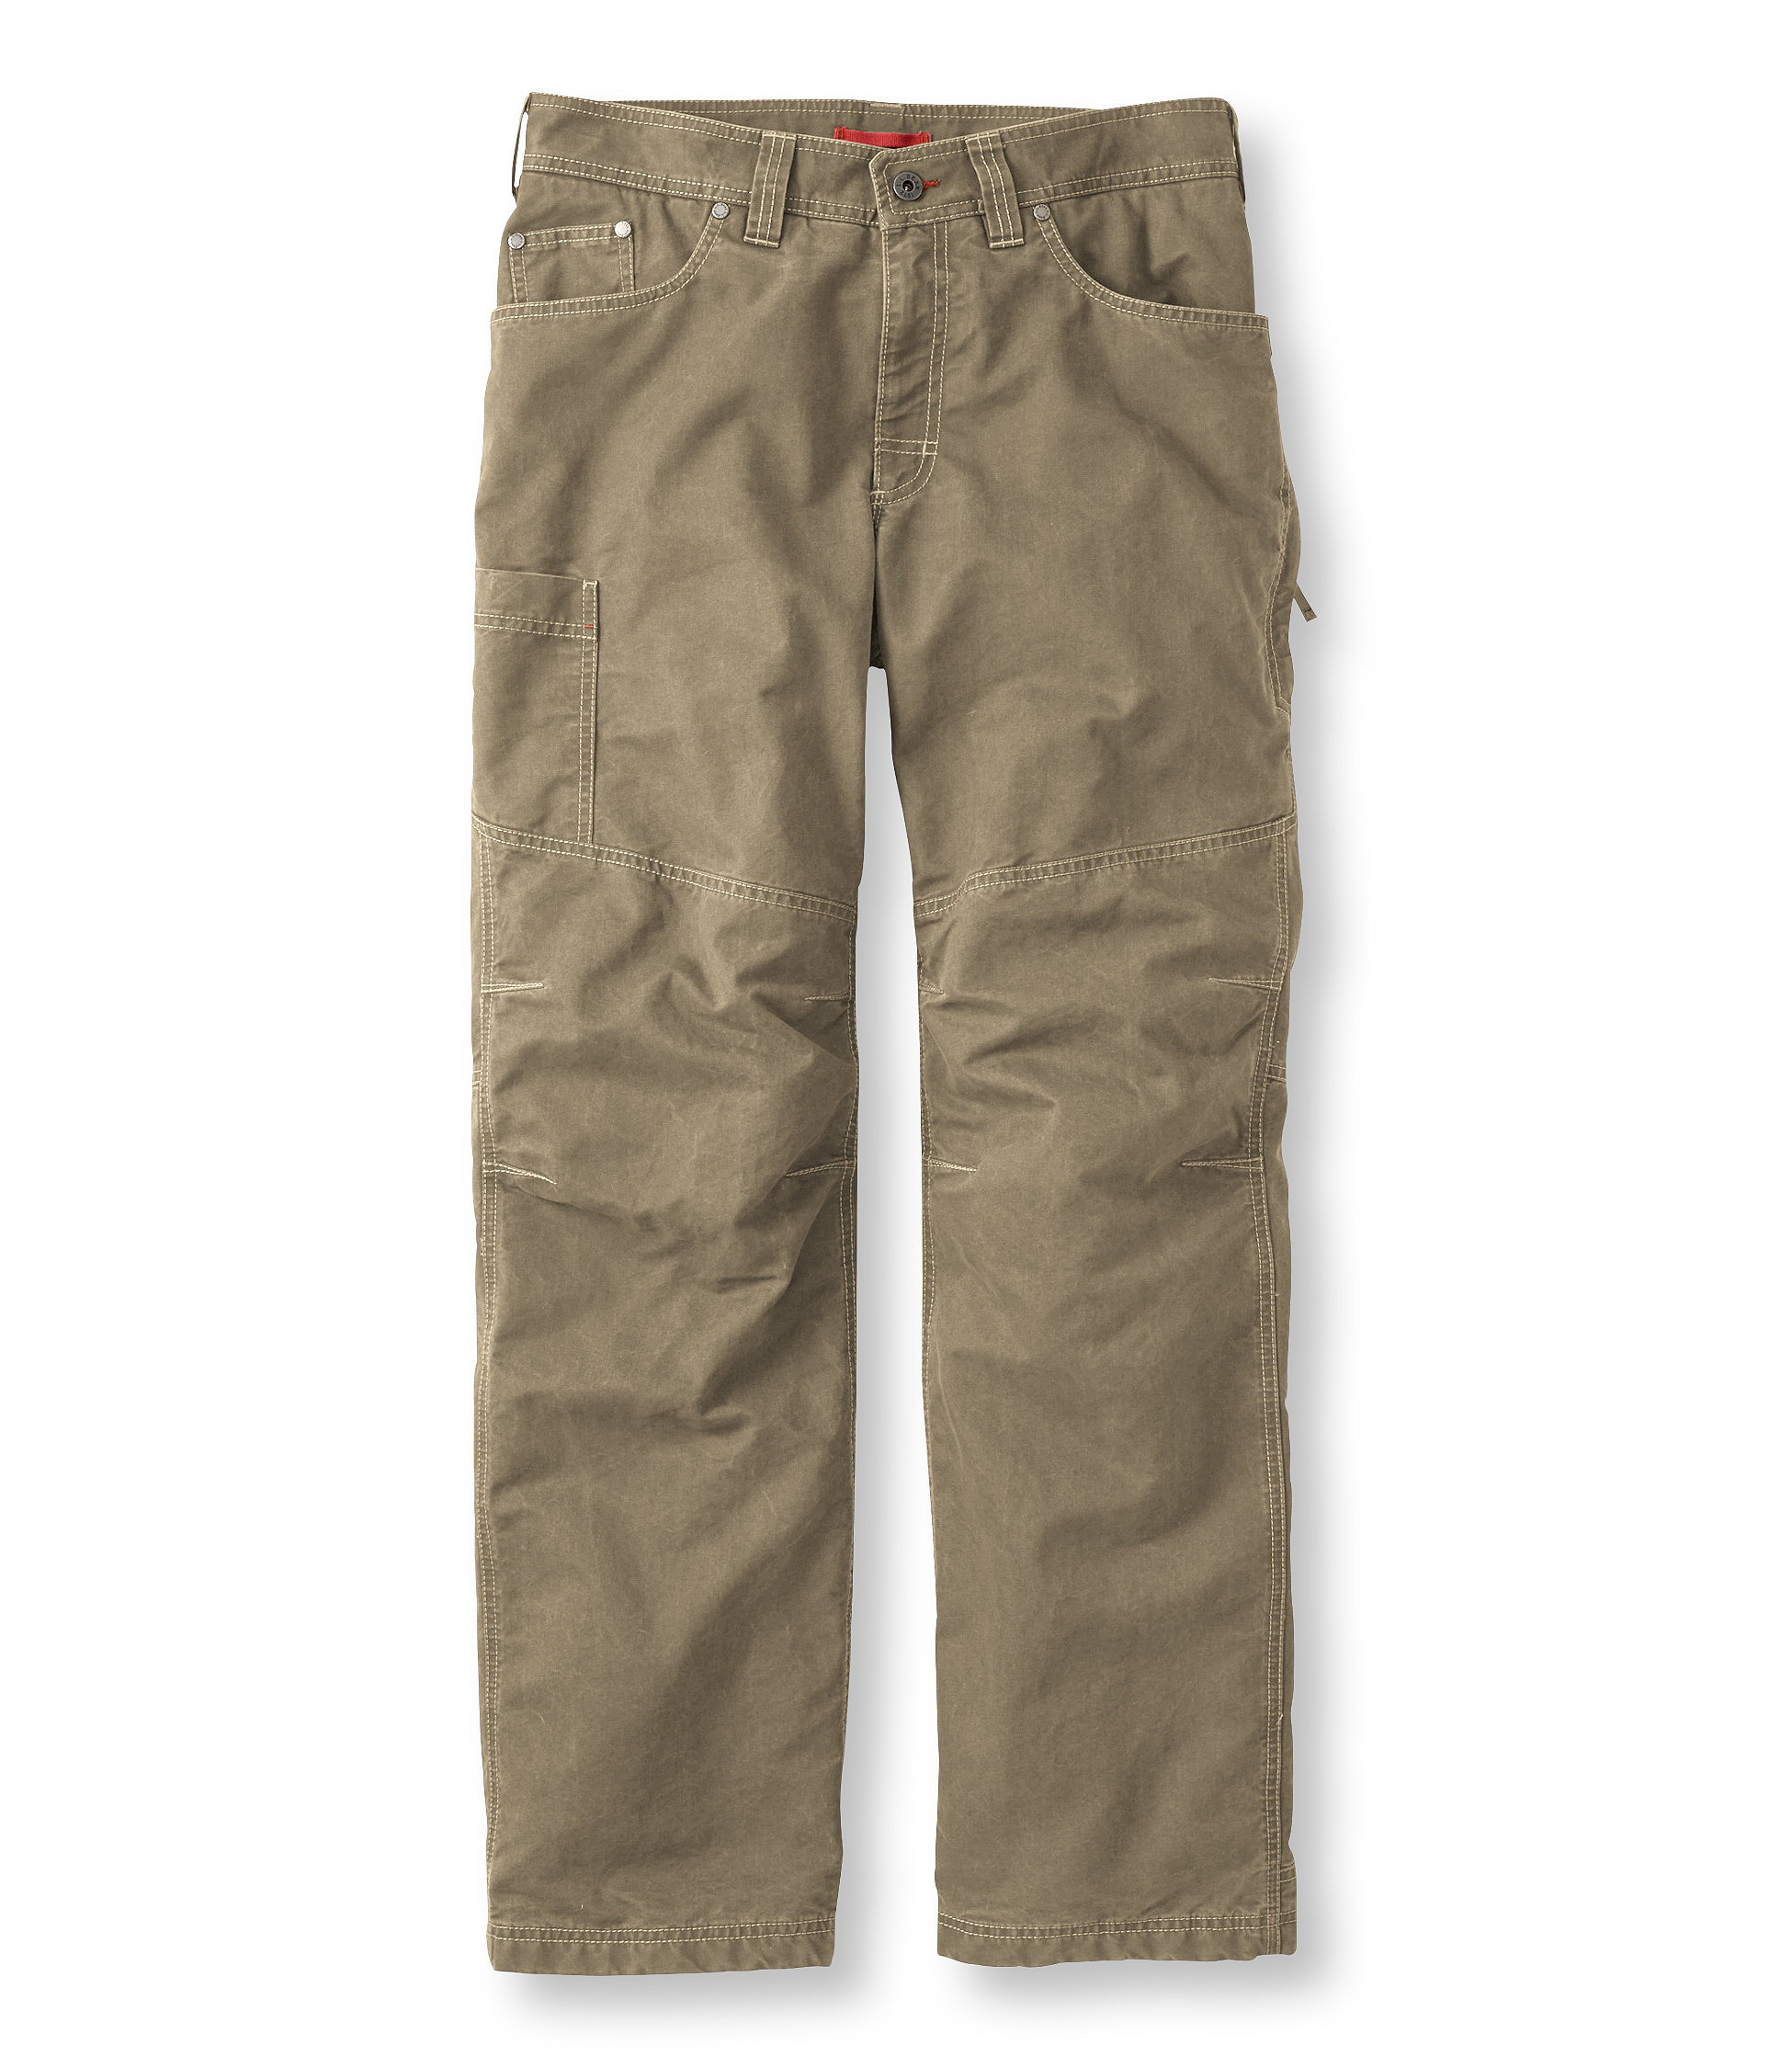 L.L.Bean Riverton Pants, Lined